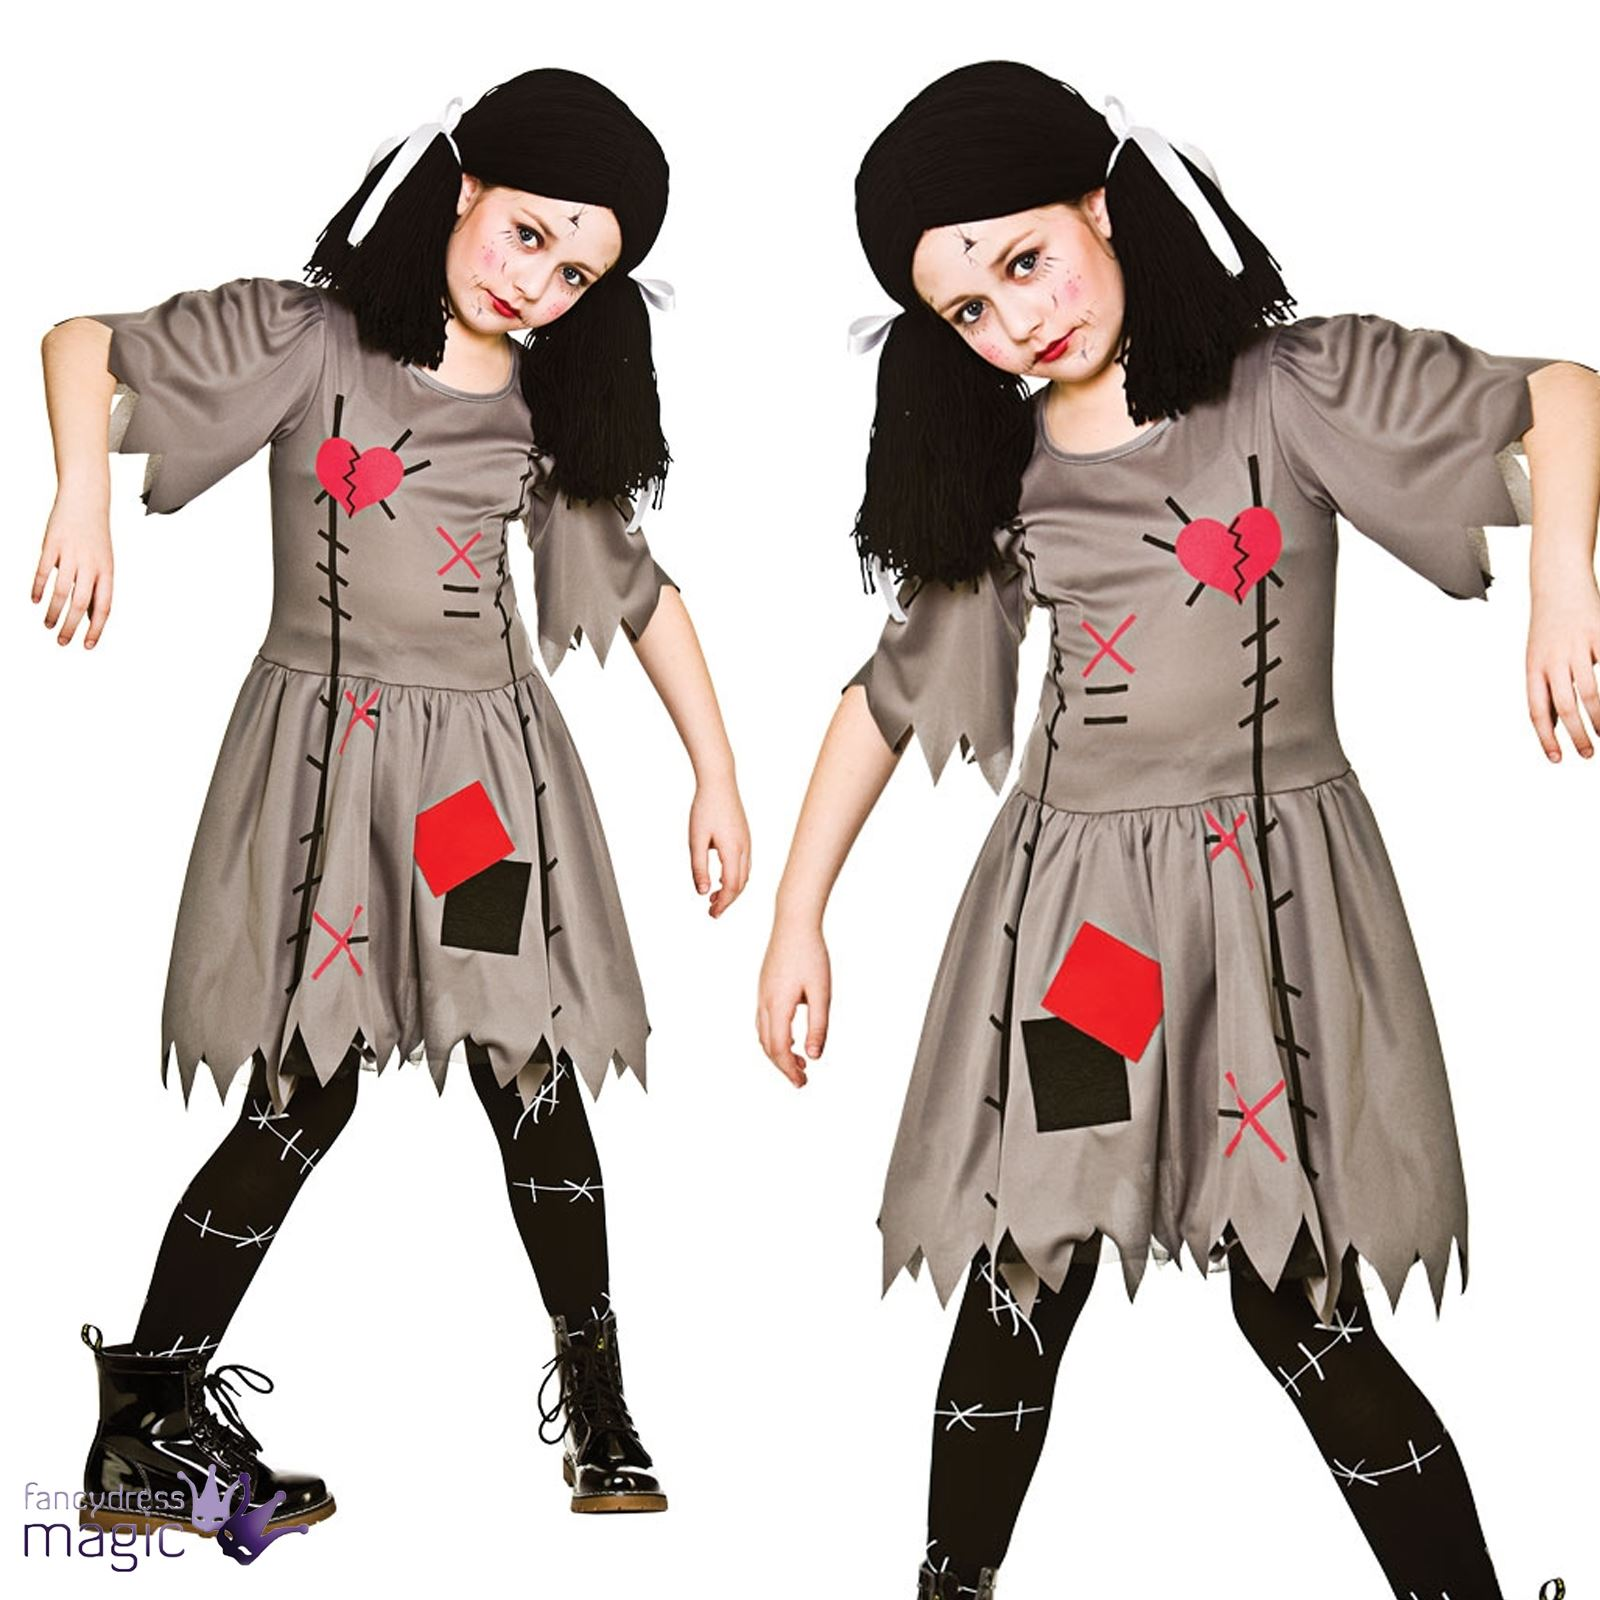 childs girls freaky voodoo evil doll dolly halloween fancy dress costume outfit